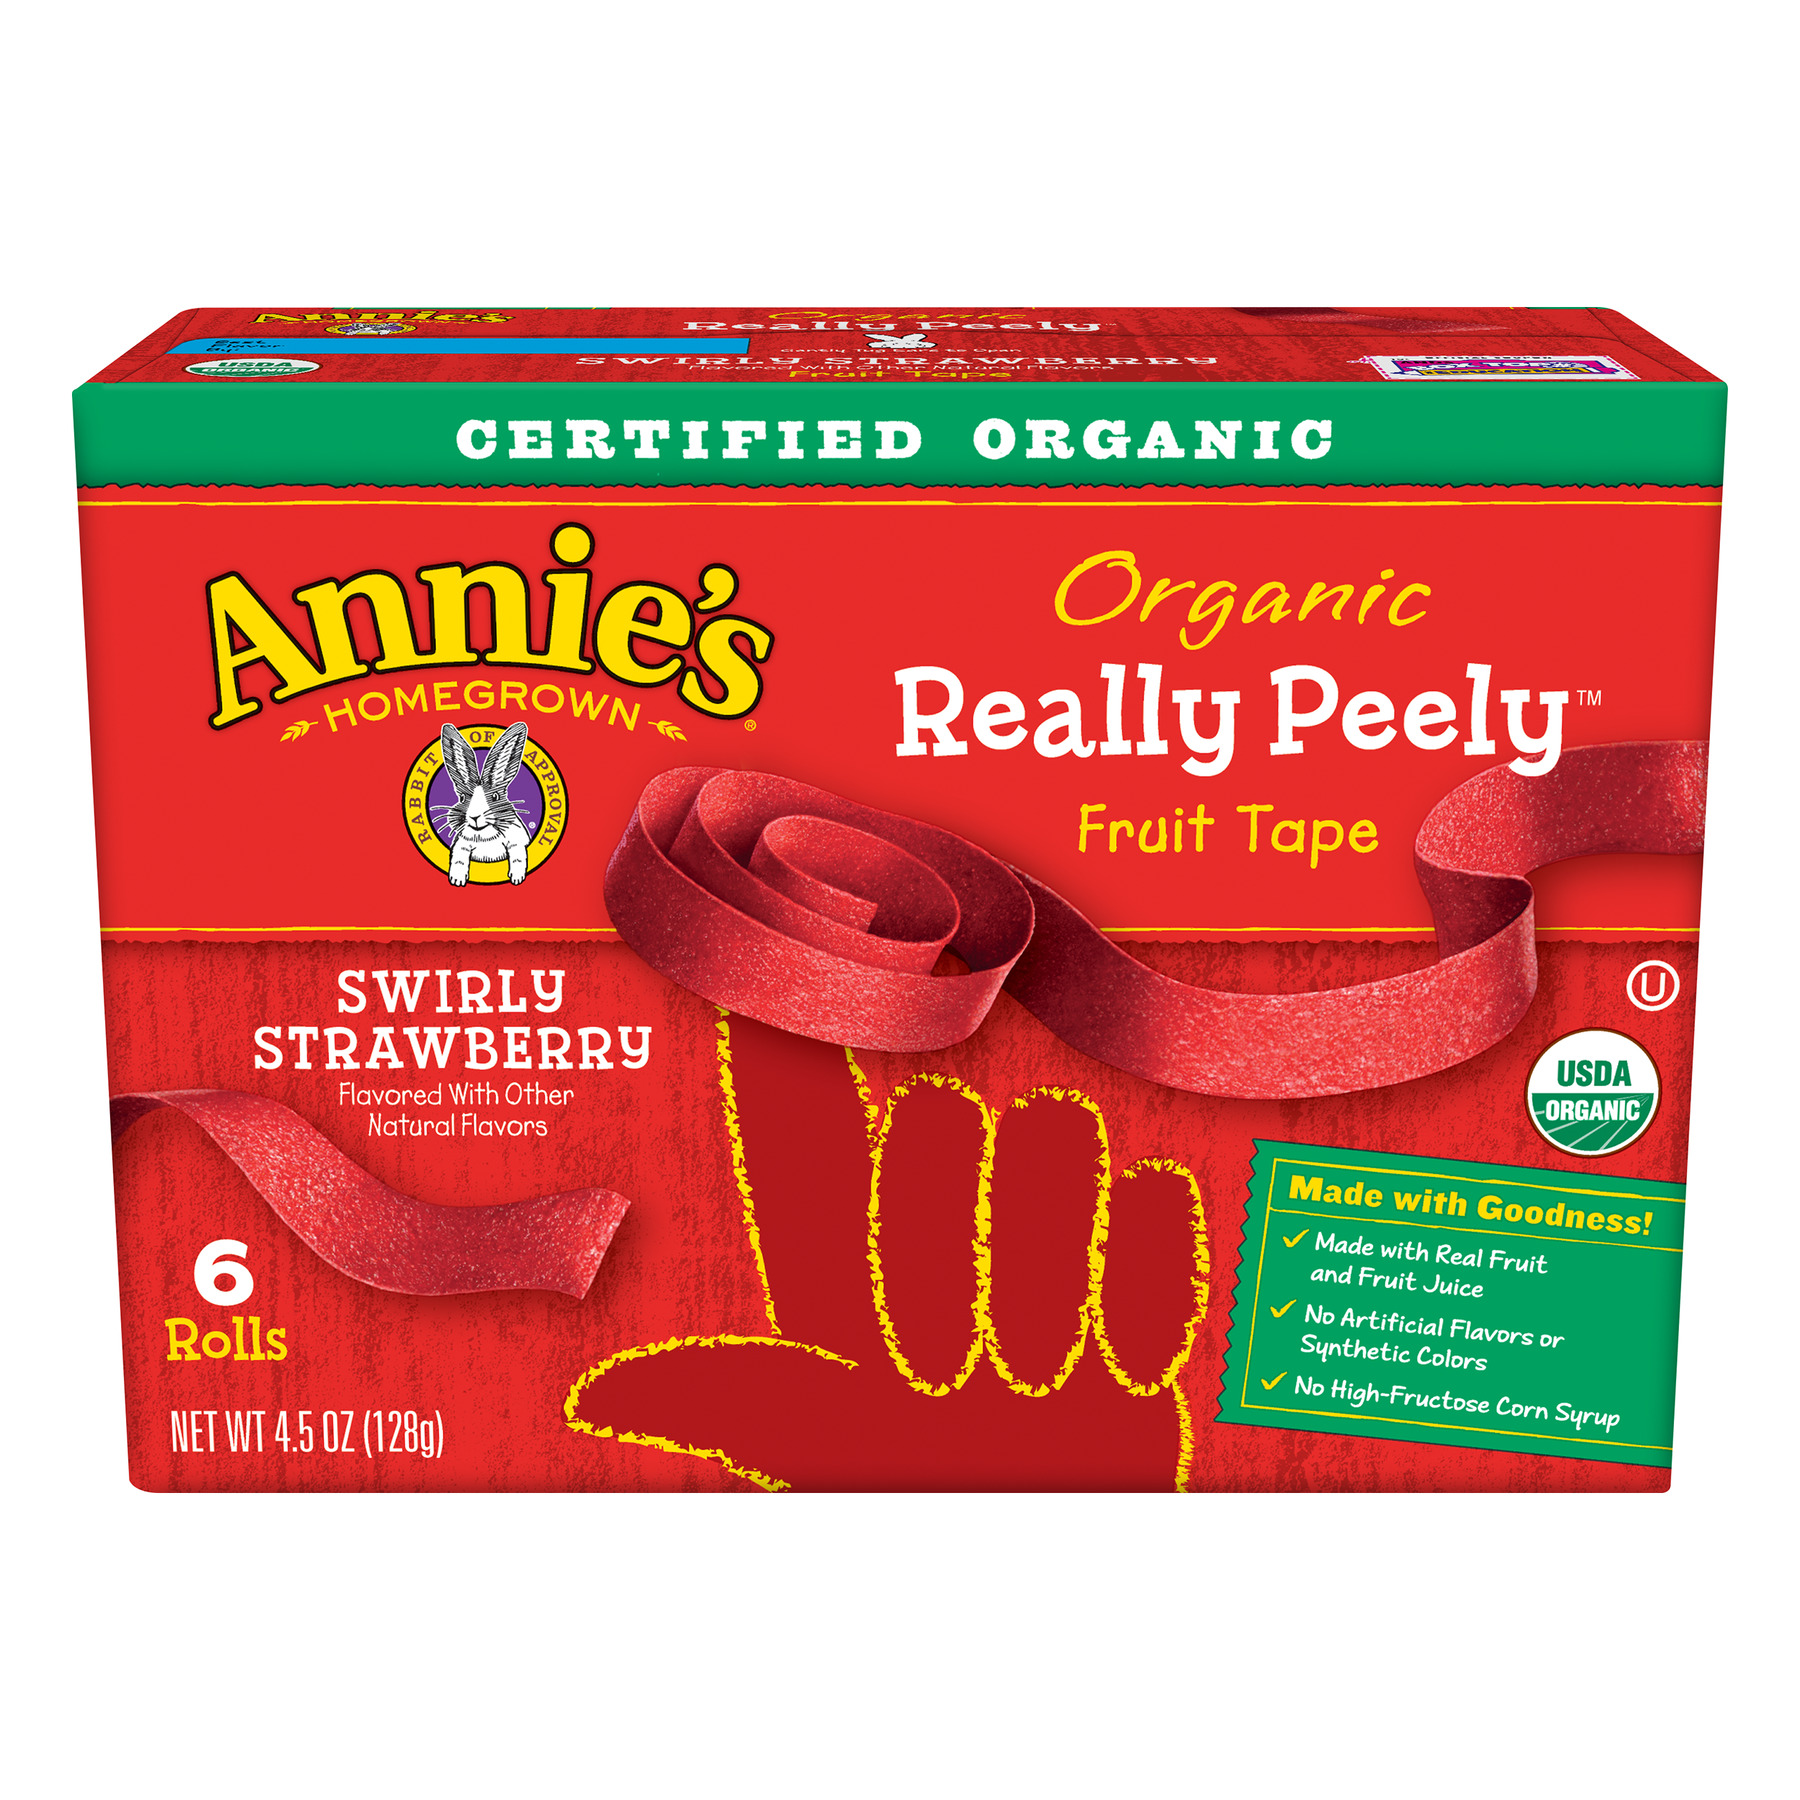 Annie's Organic Really Peely Fruit Tape Swirly Strawberry, 6 ct, 4.5 oz